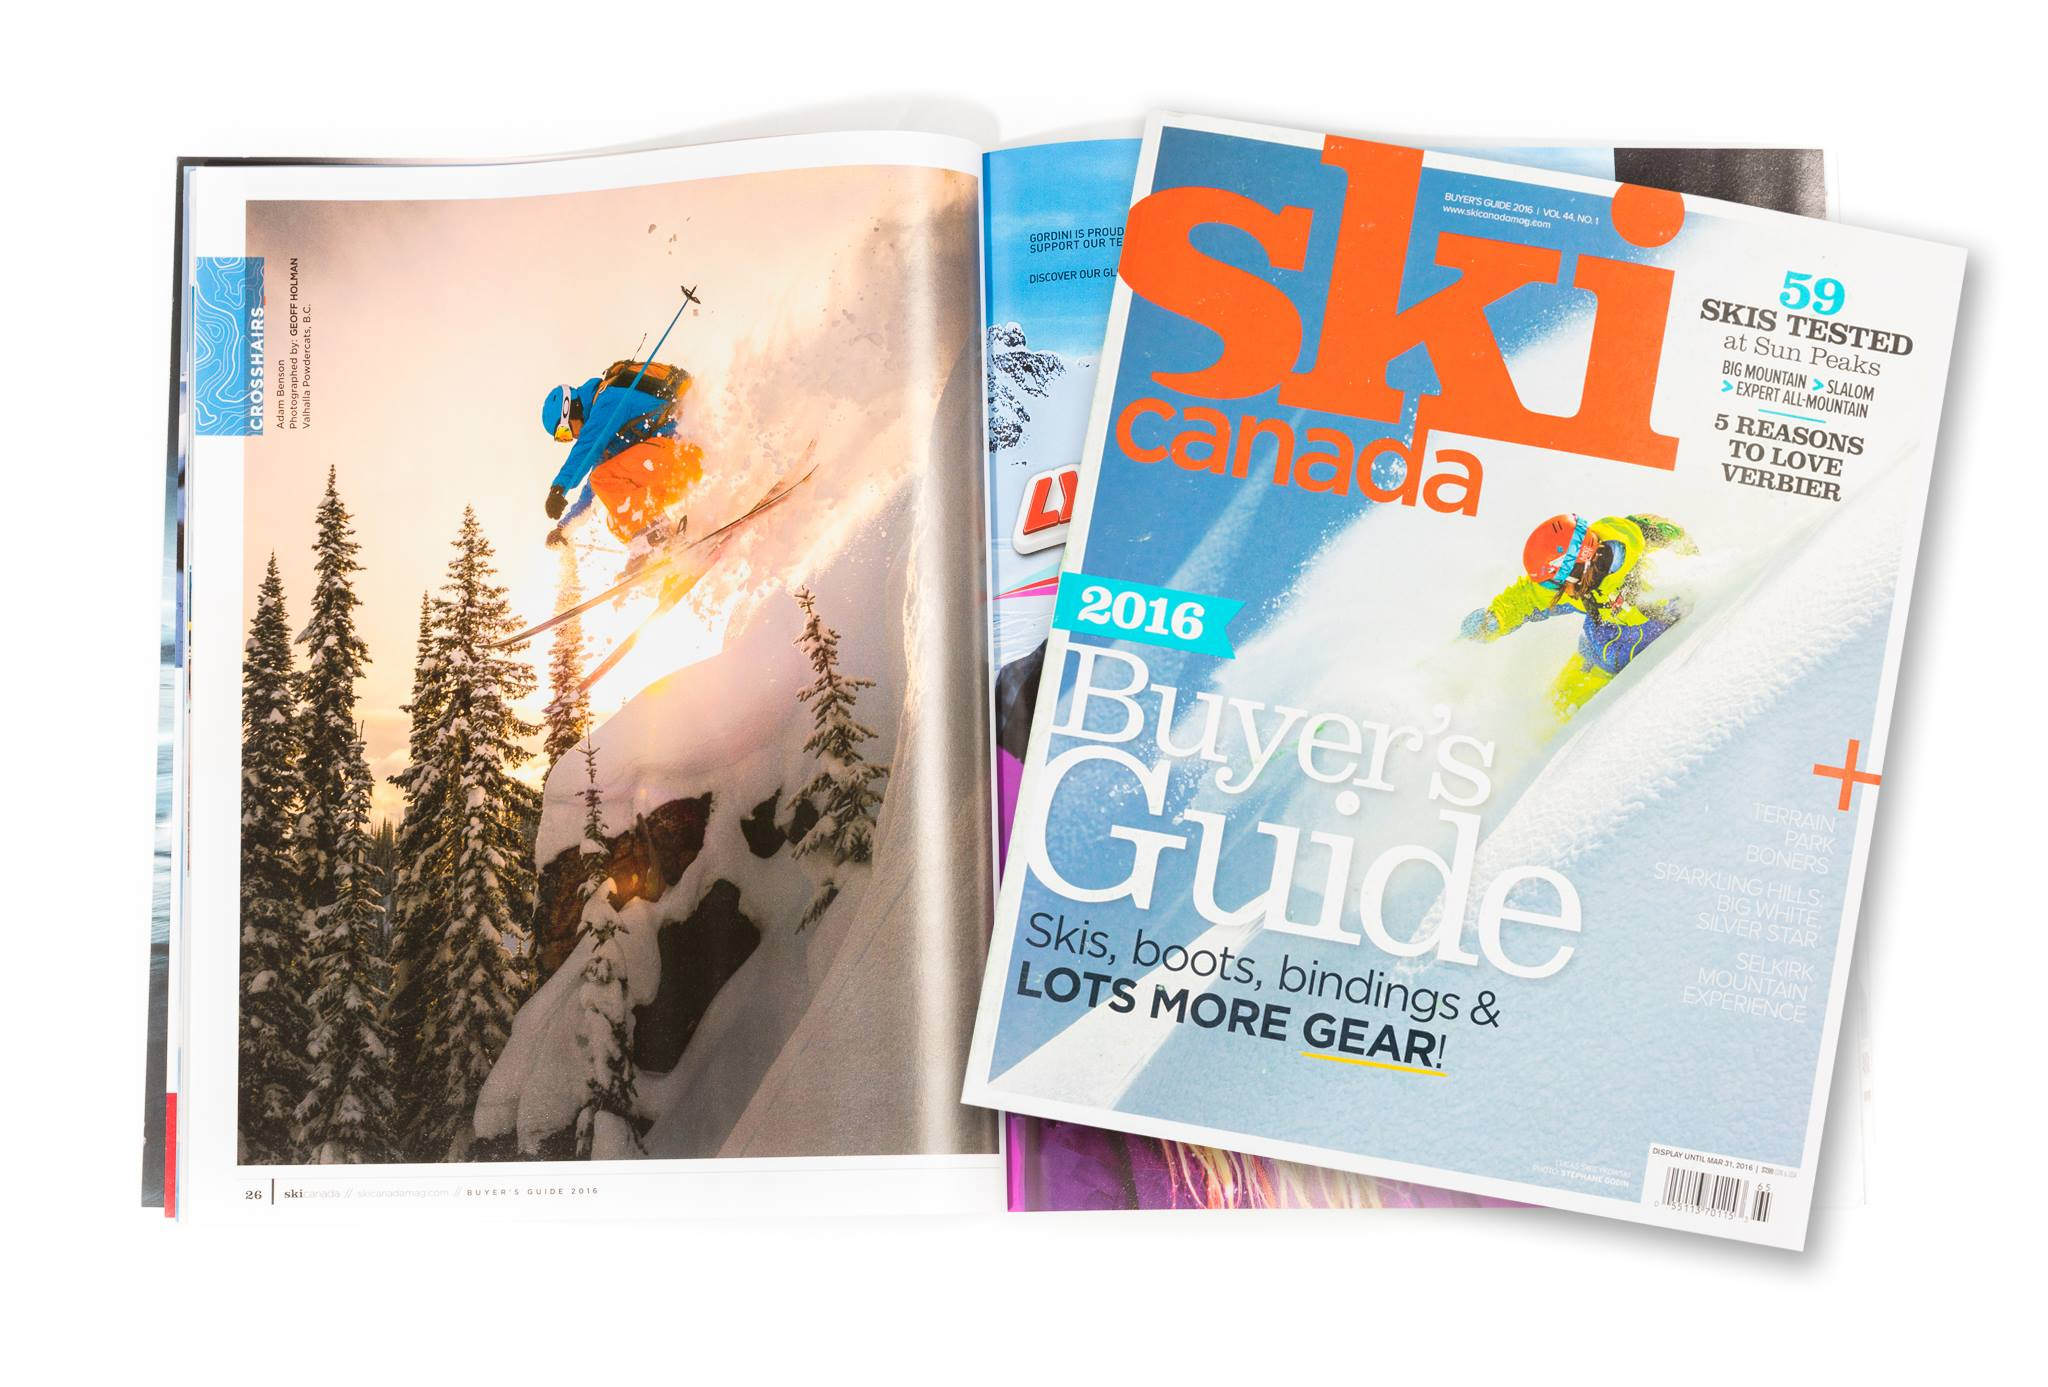 Catskiing Canada featured in the Ski Canada Buyers Guide Gallery